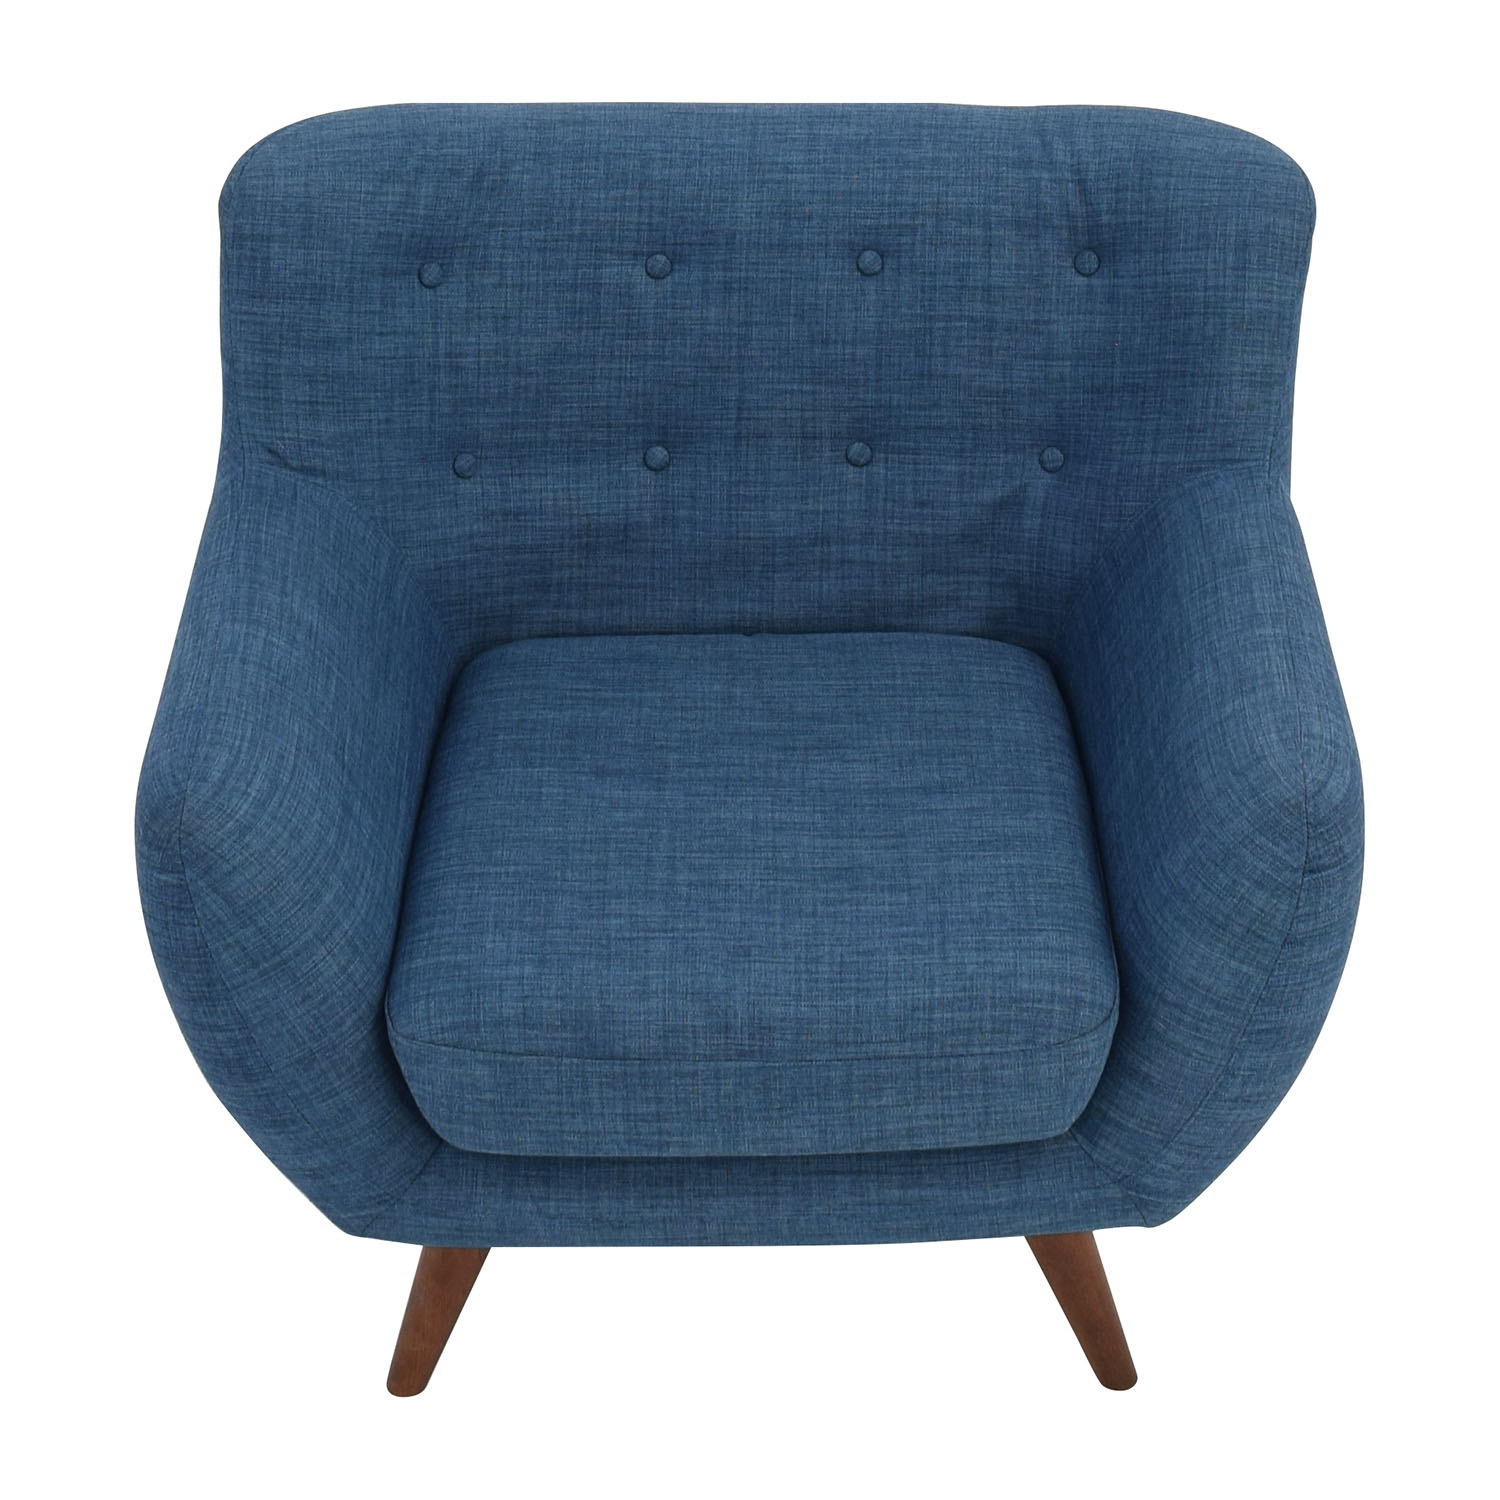 Olson Olson Mid-Century Blue Tufted Arm Chair used